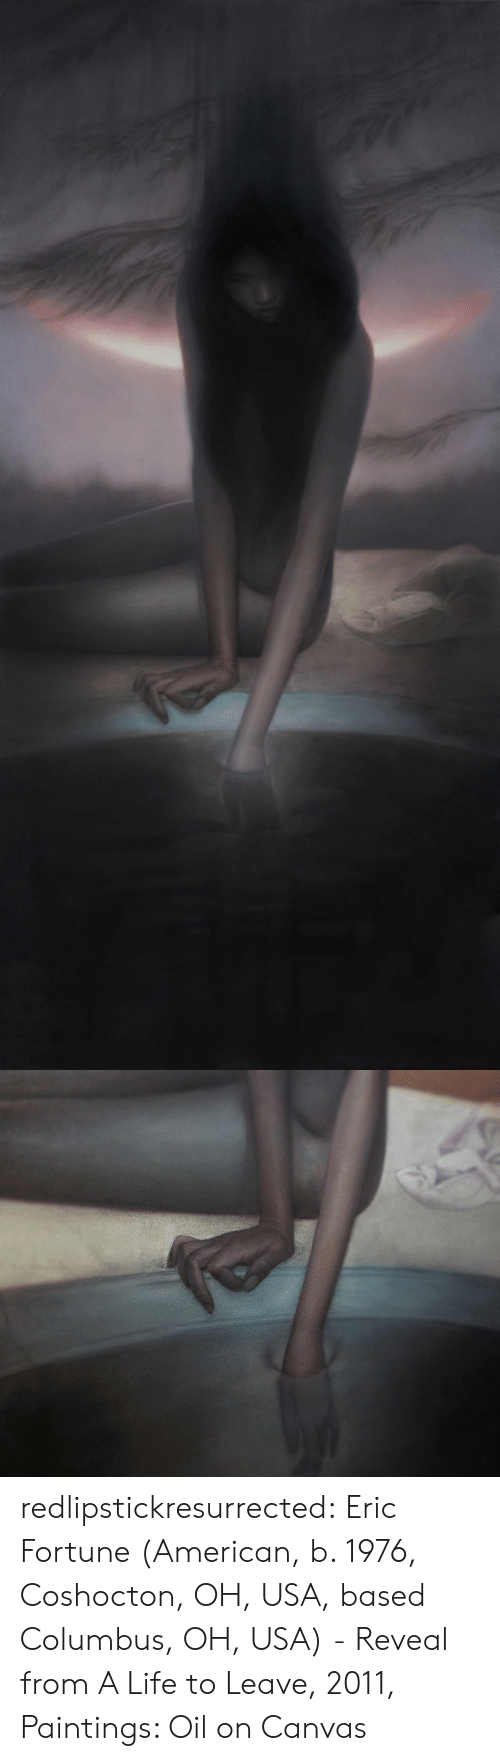 columbus: redlipstickresurrected:  Eric Fortune (American, b. 1976, Coshocton, OH, USA, based Columbus, OH, USA) - Reveal from A Life to Leave, 2011, Paintings: Oil on Canvas